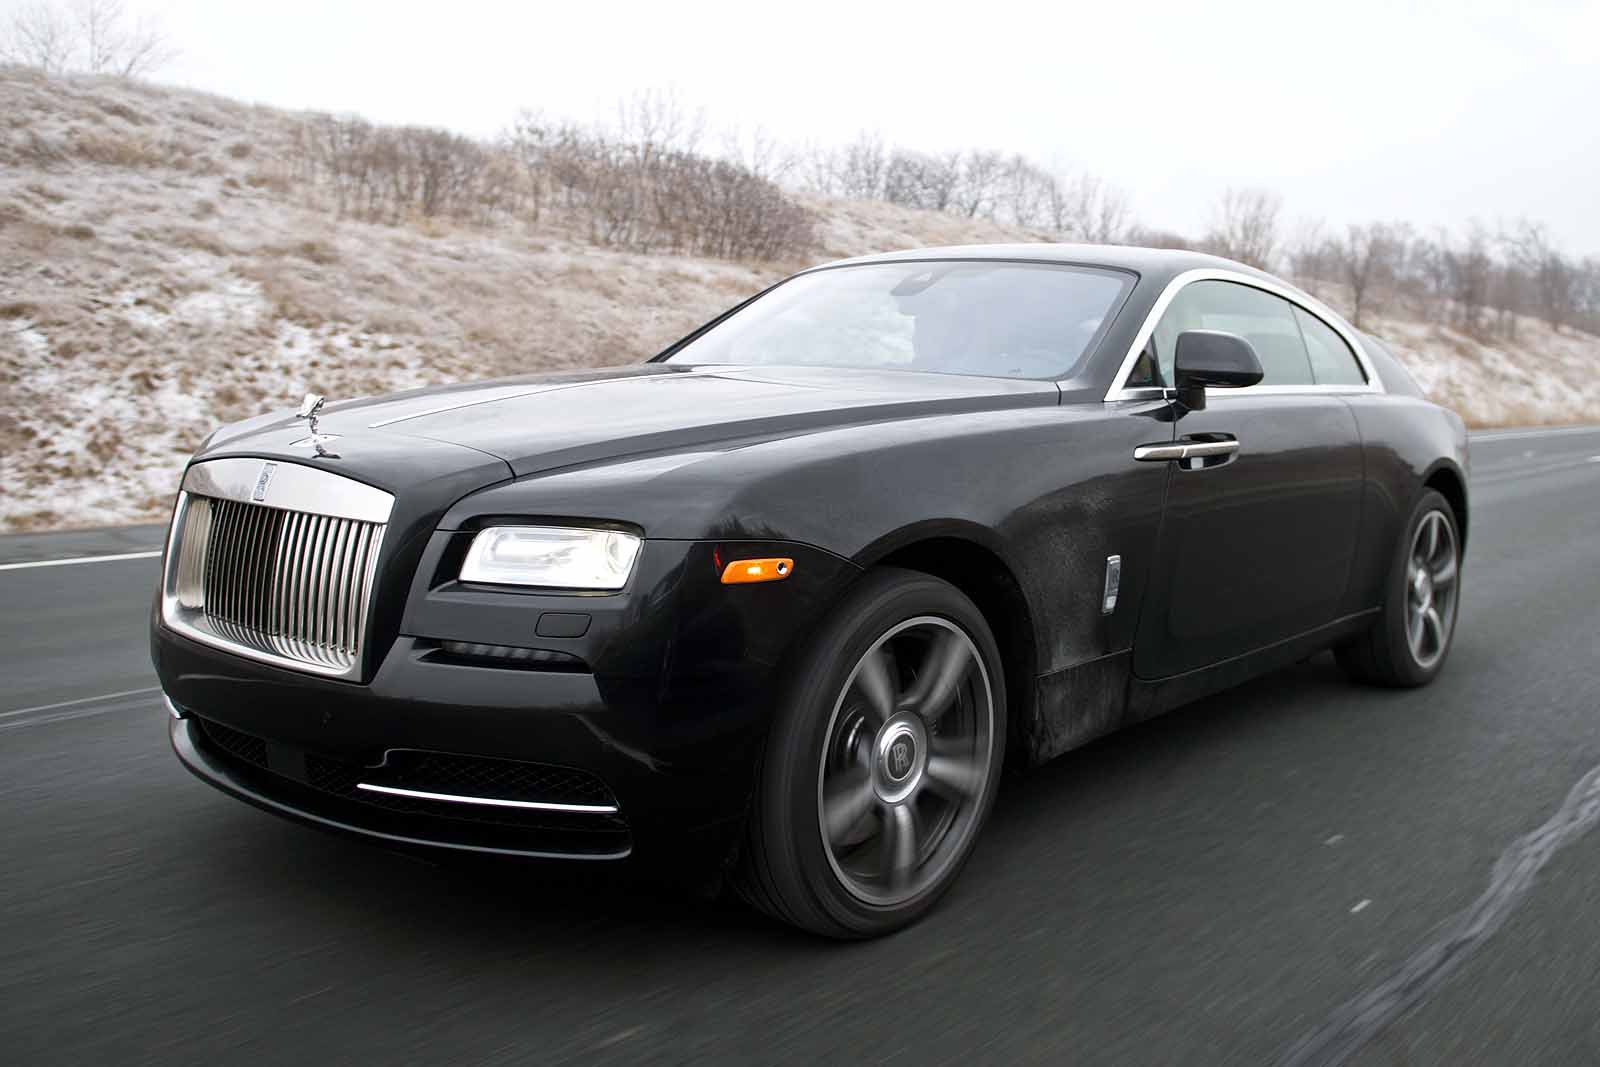 9 Things I Learned Driving The 2016 Rolls-Royce Wraith